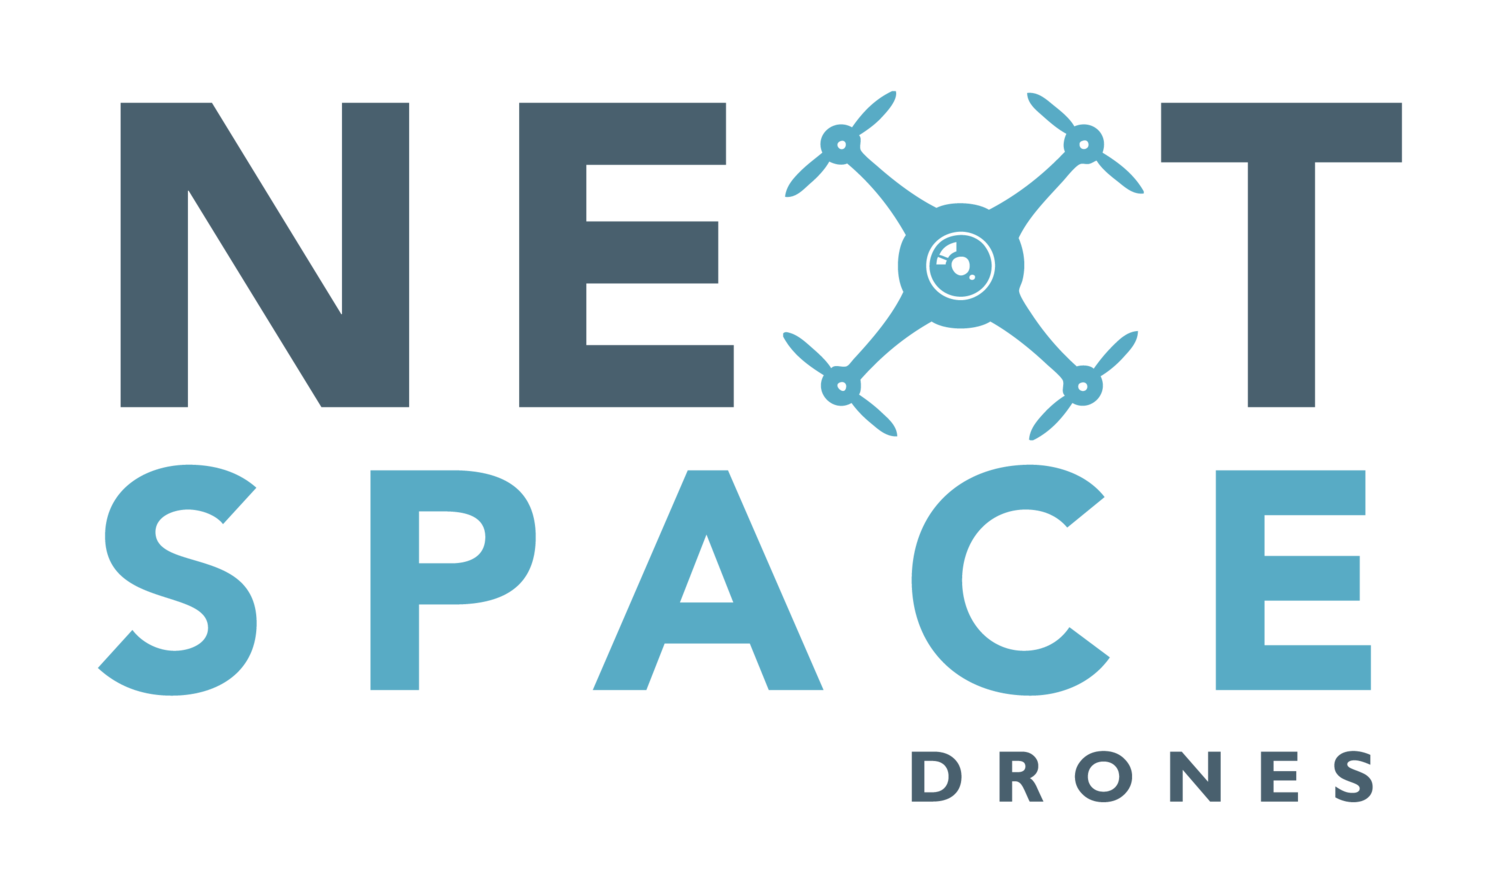 Next Space Drones - aerial drone photos and videos - drone pilots operating throughout the UK. Fully qualified, CAA